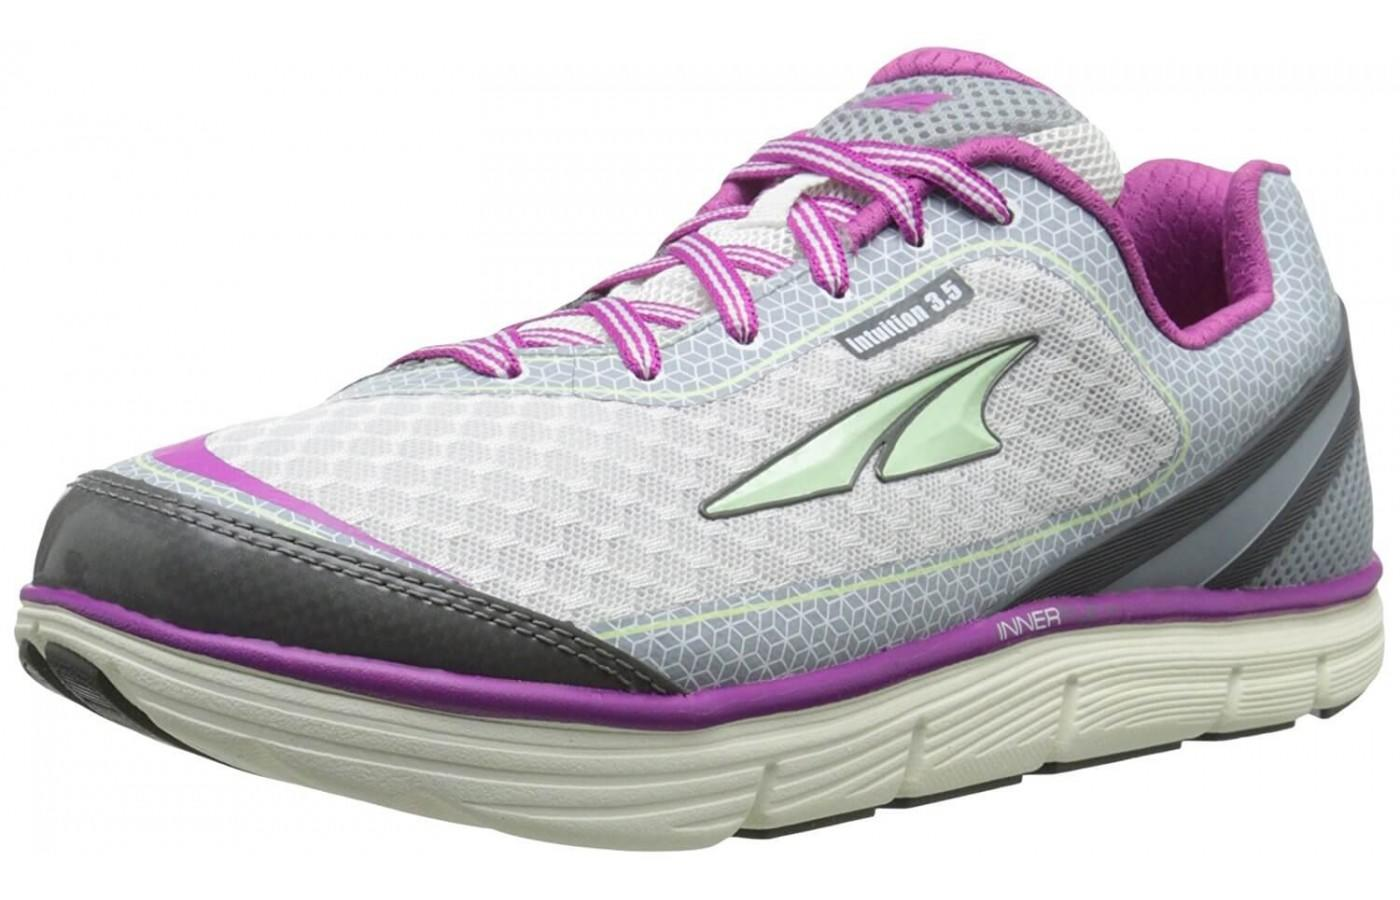 The Altra Intuition 3.5 is specifically made for women